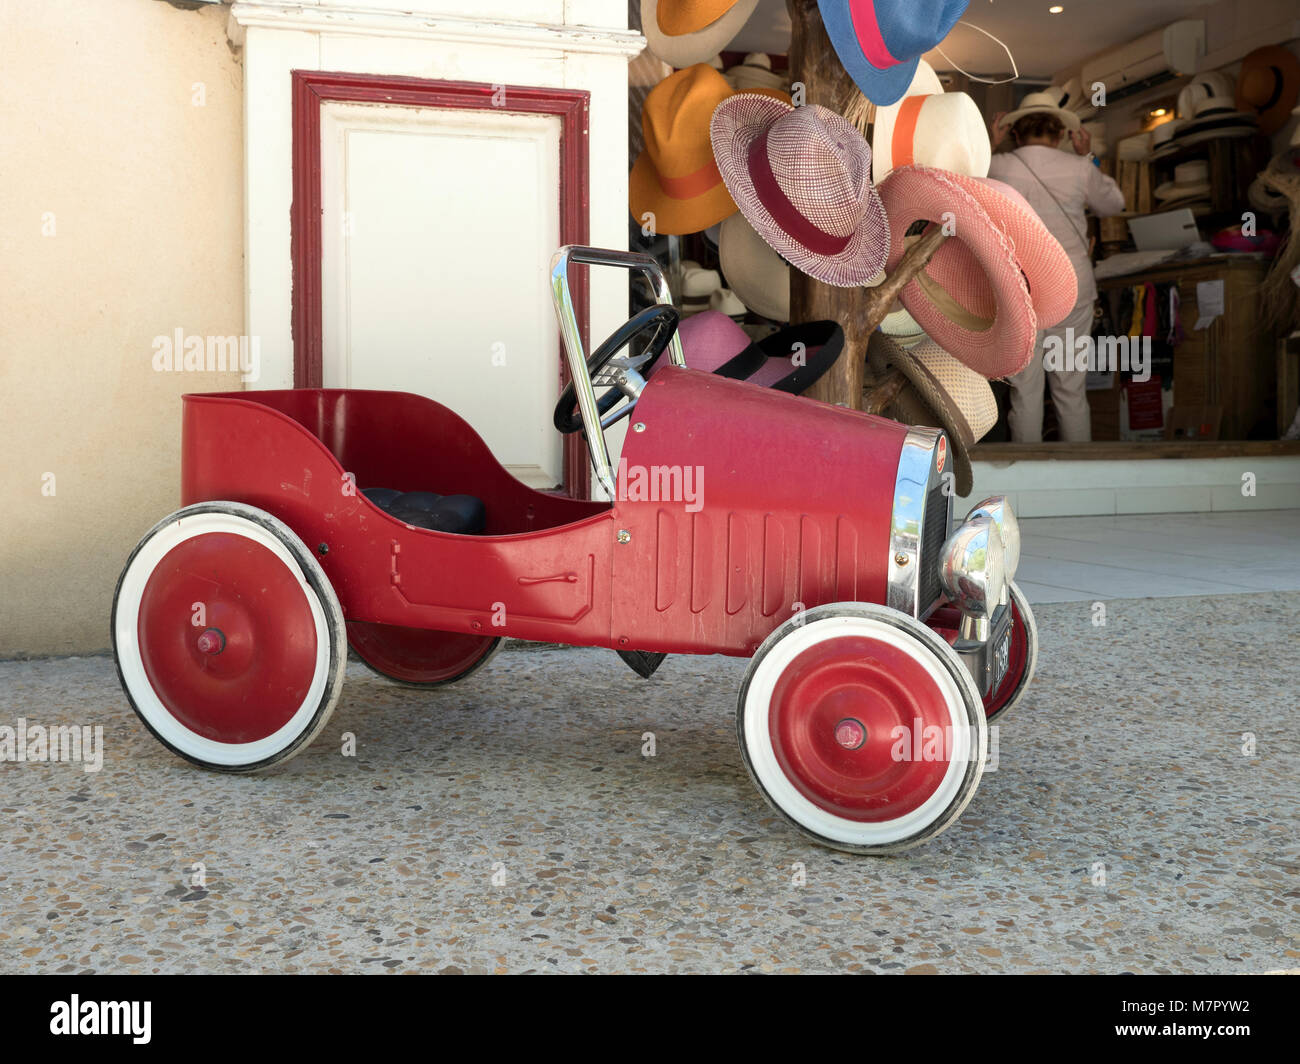 Toy Pedal Car High Resolution Stock Photography And Images Alamy